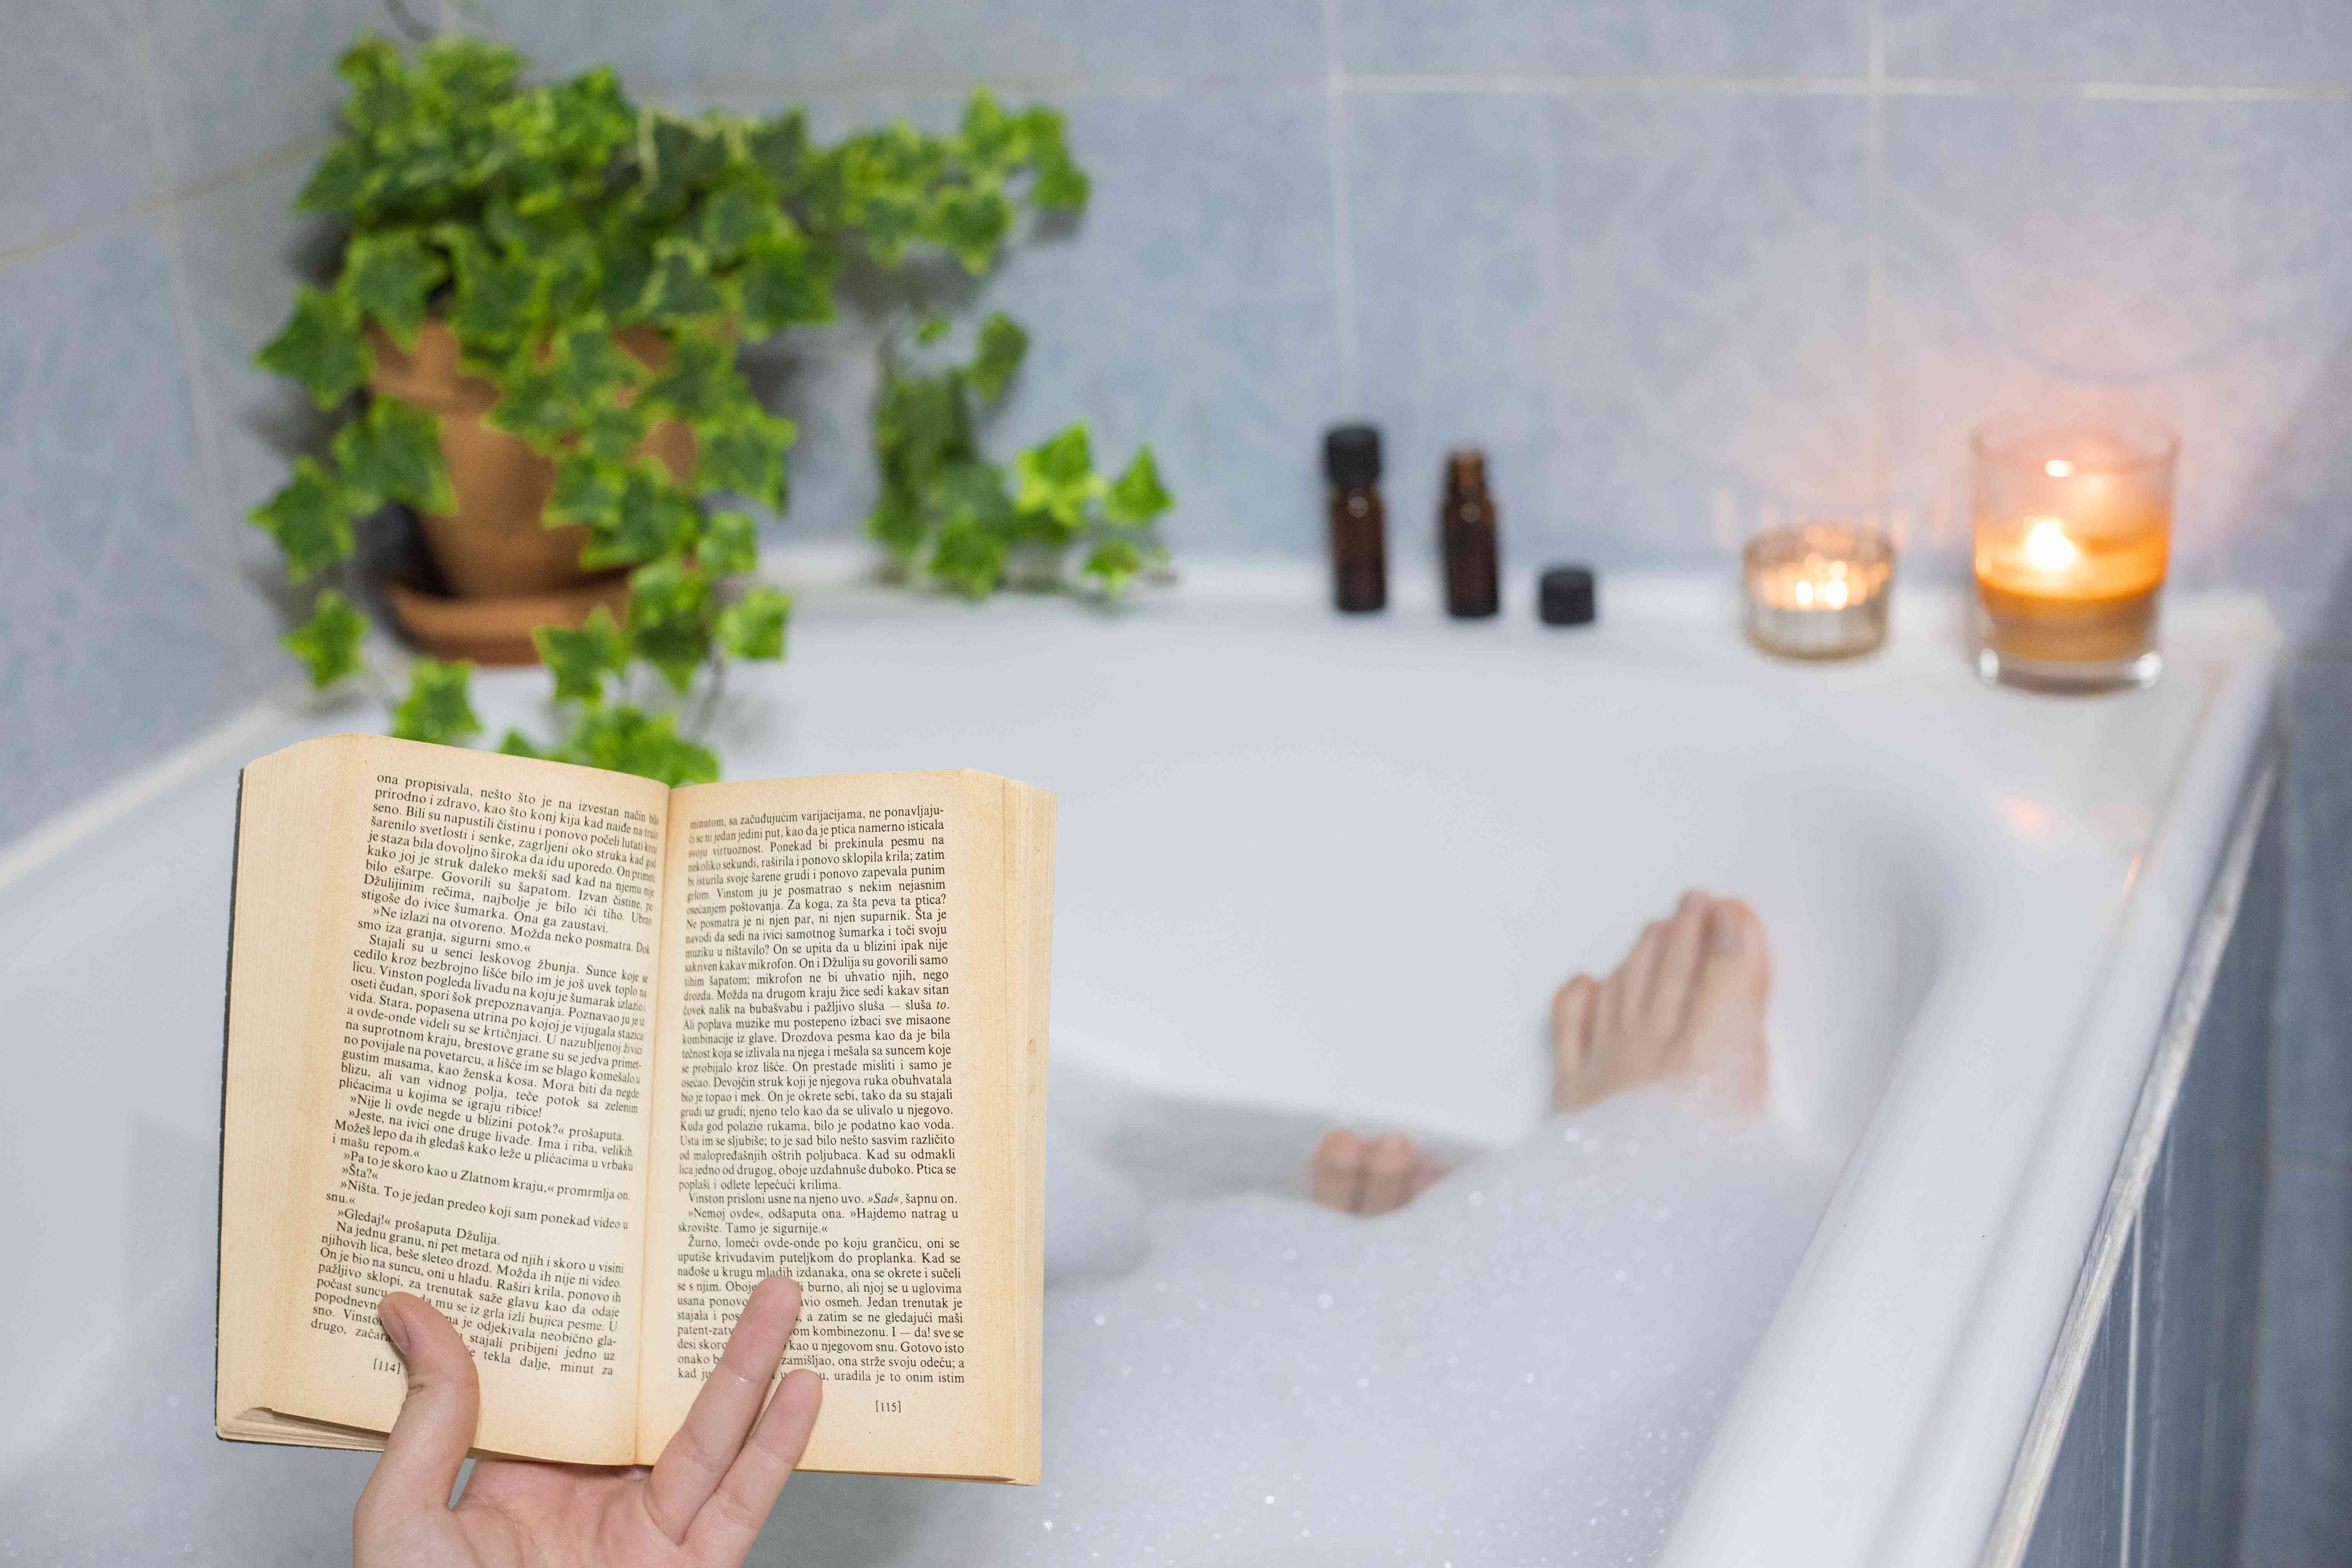 person relaxes in bubble bath while reading a book with candles lit and ivy plant